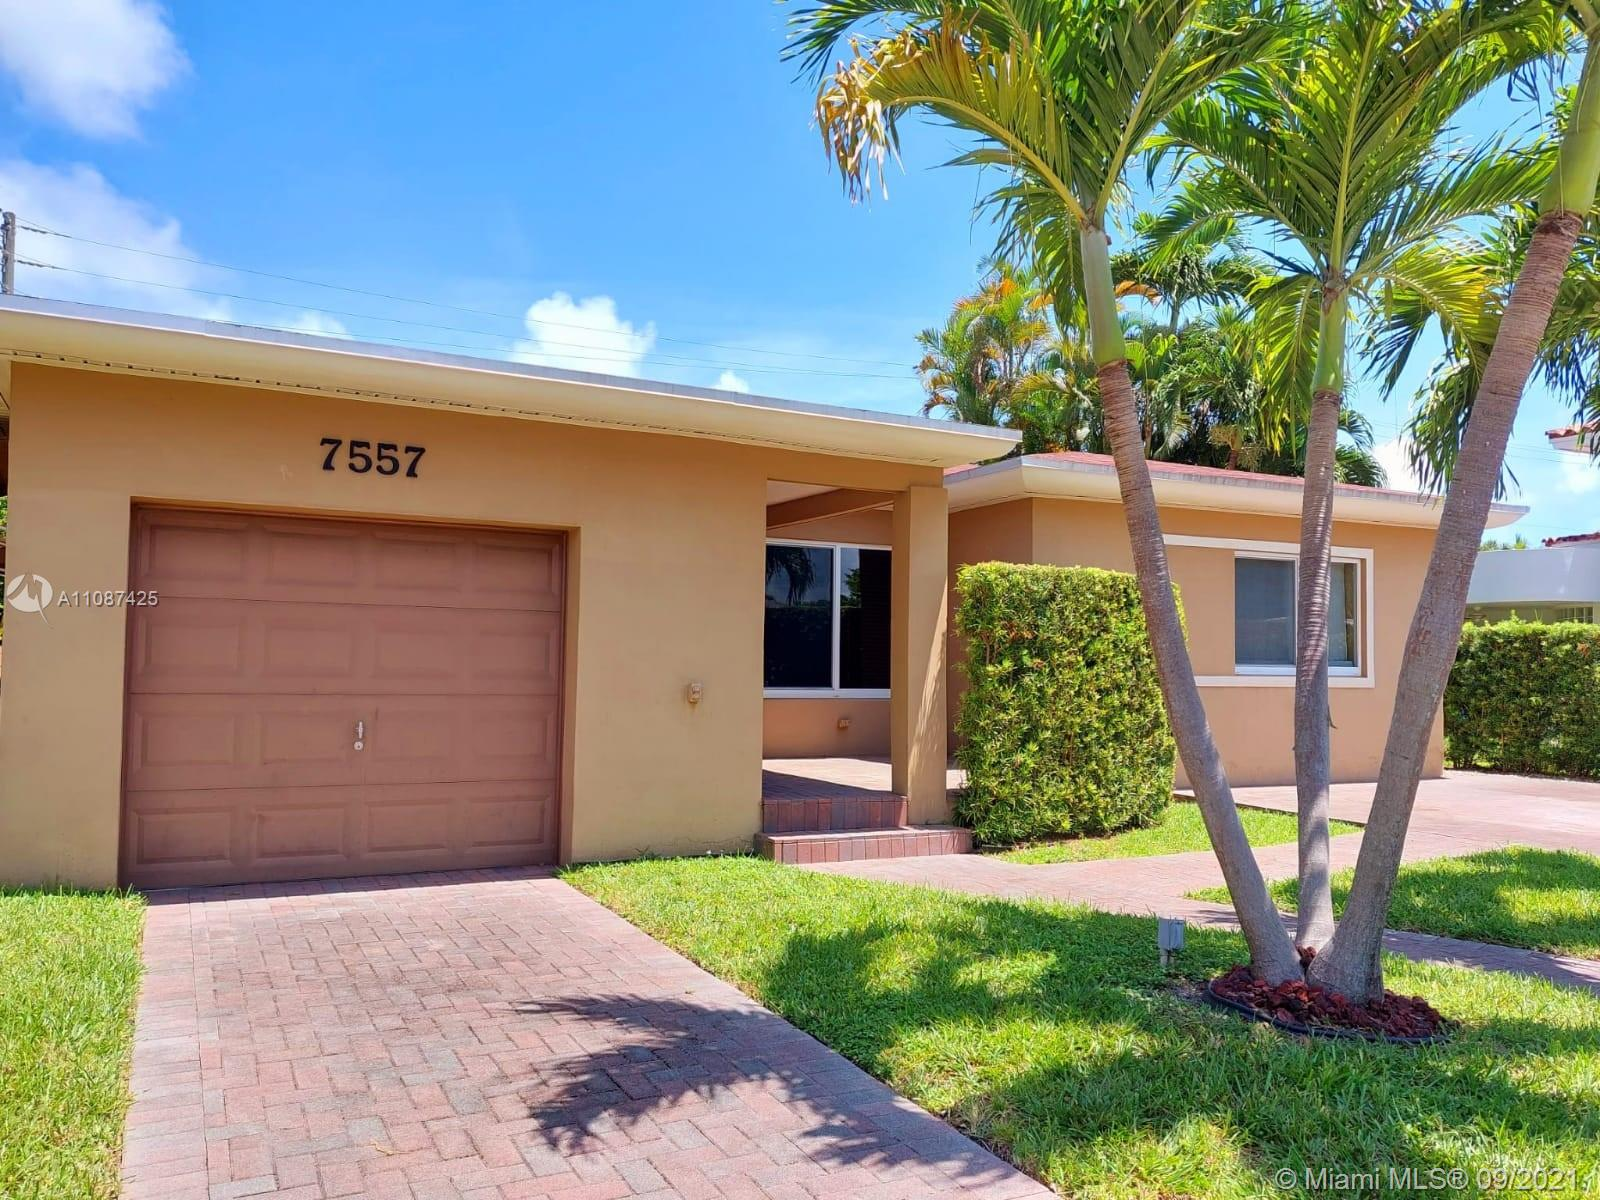 Main property image for  7557 Mutiny Ave